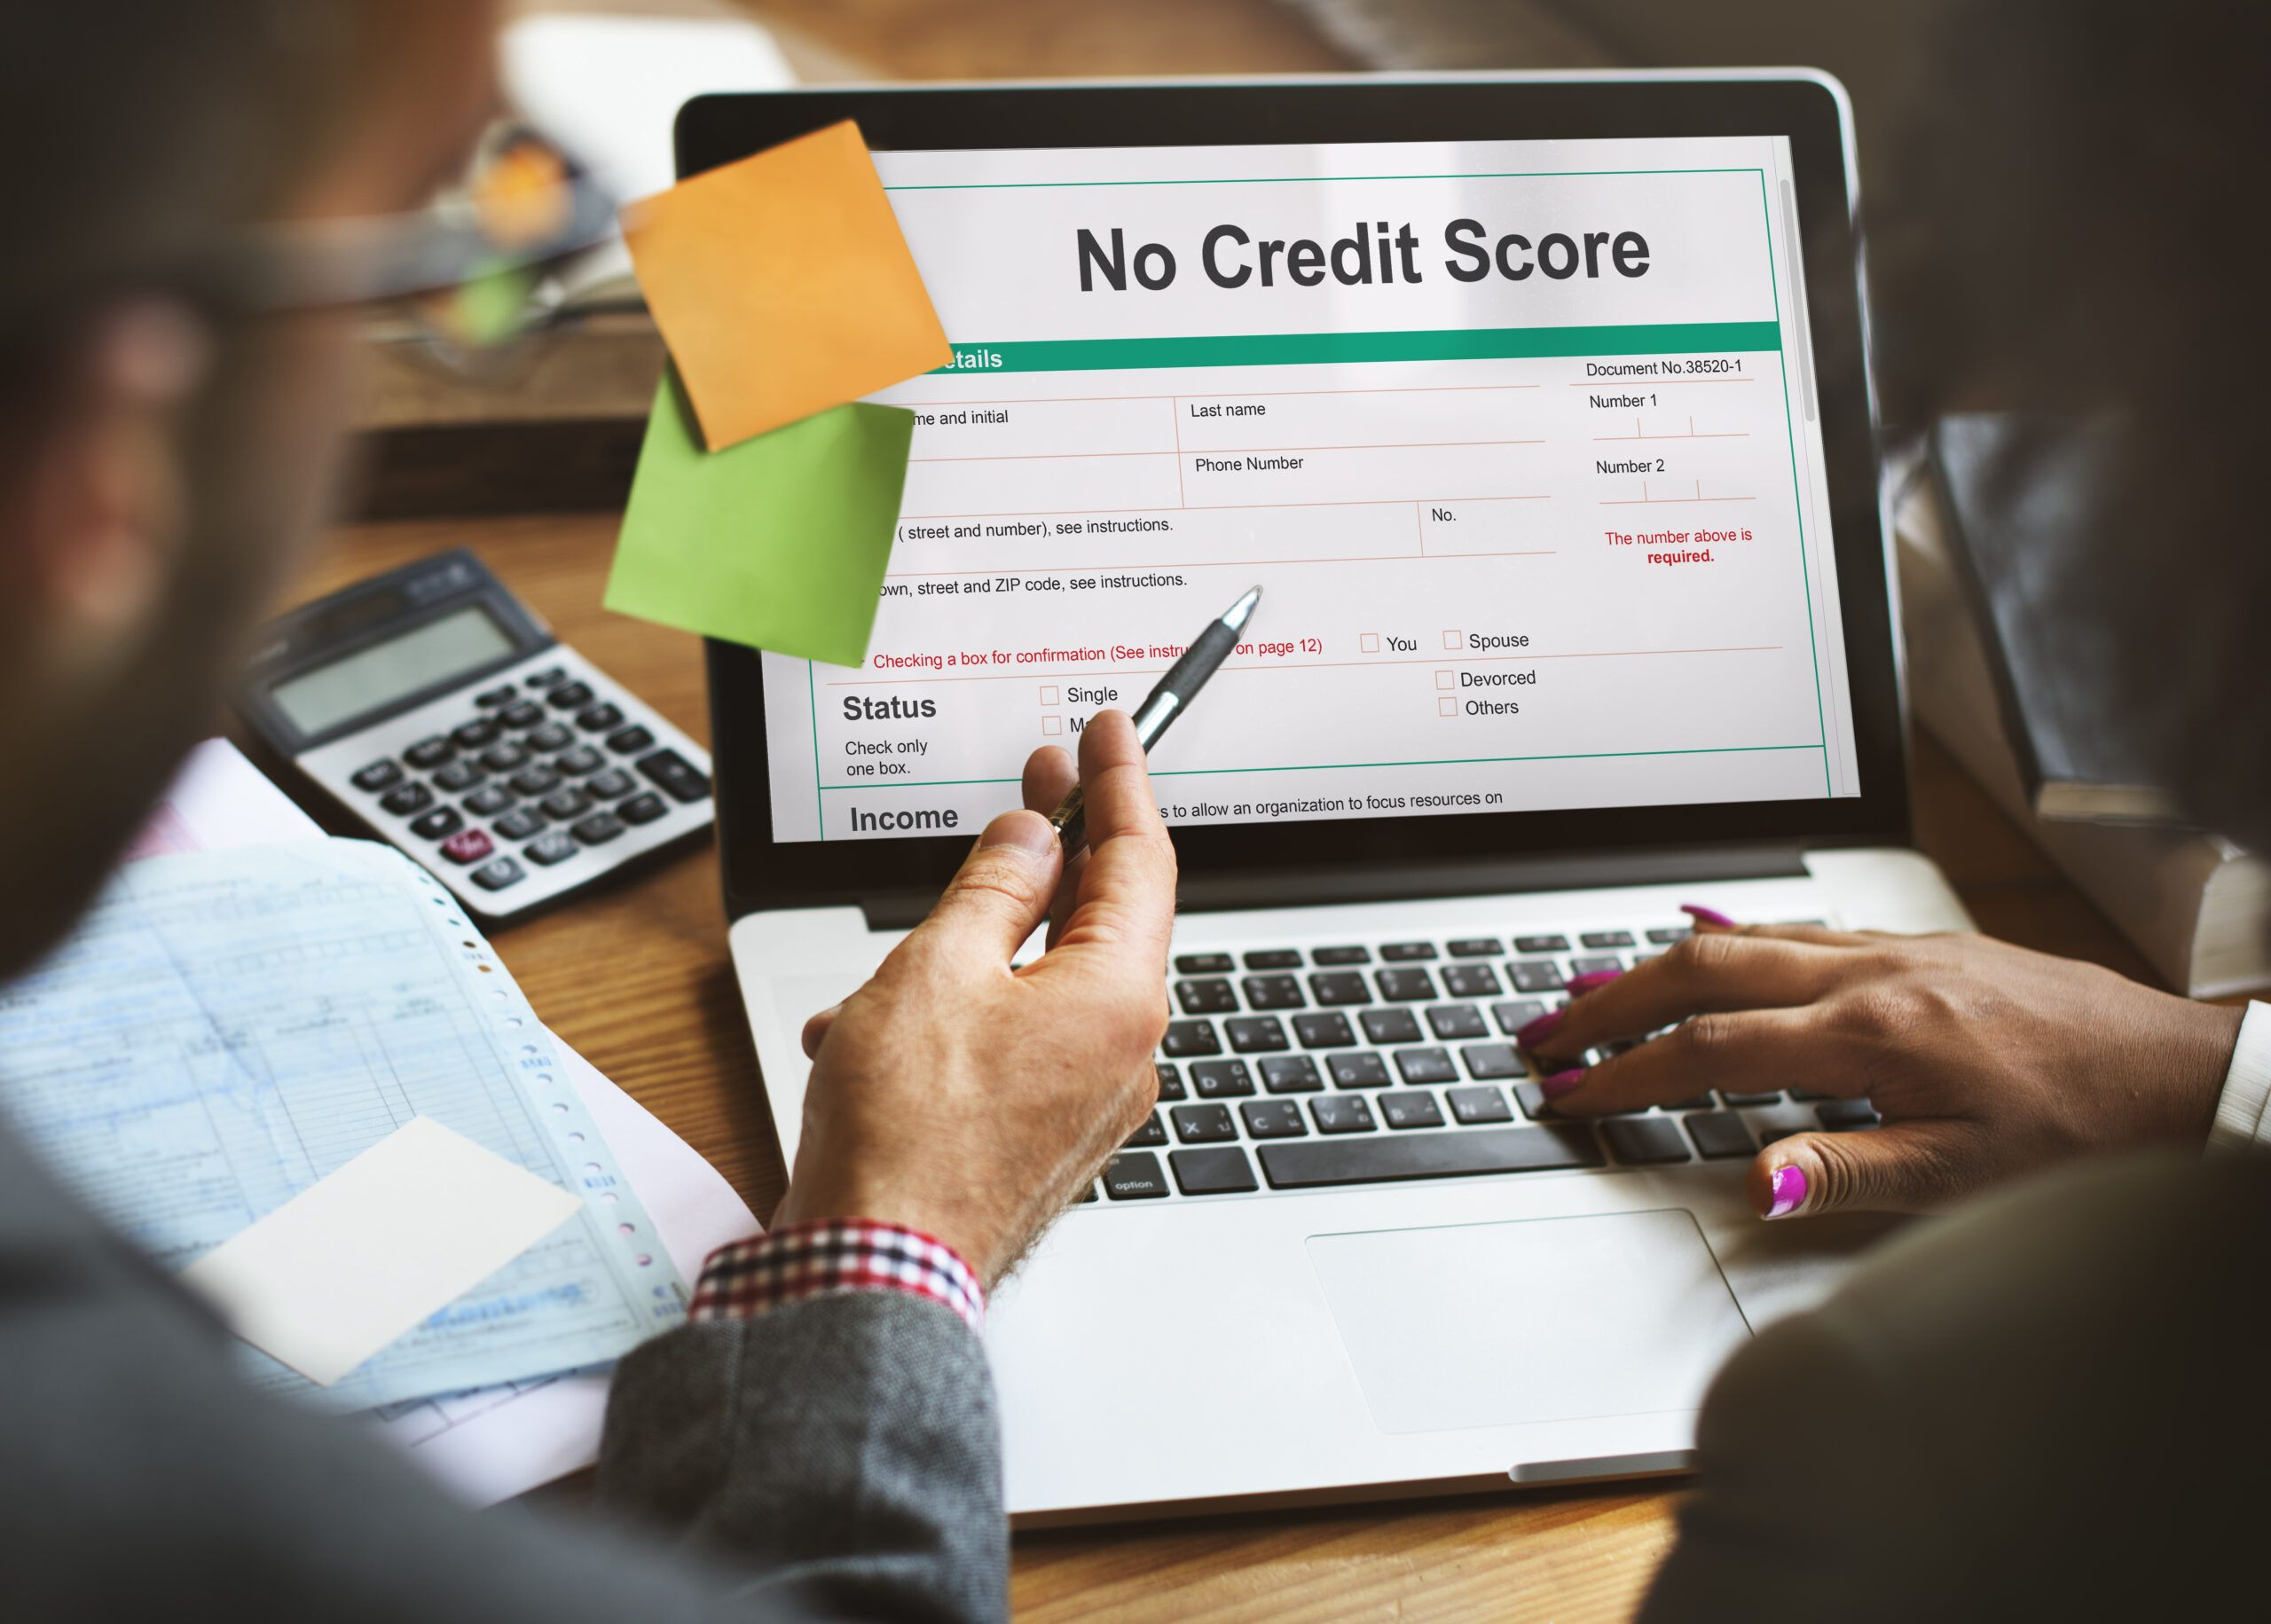 Can You Live Entirely Without Credit? | WalletGenius